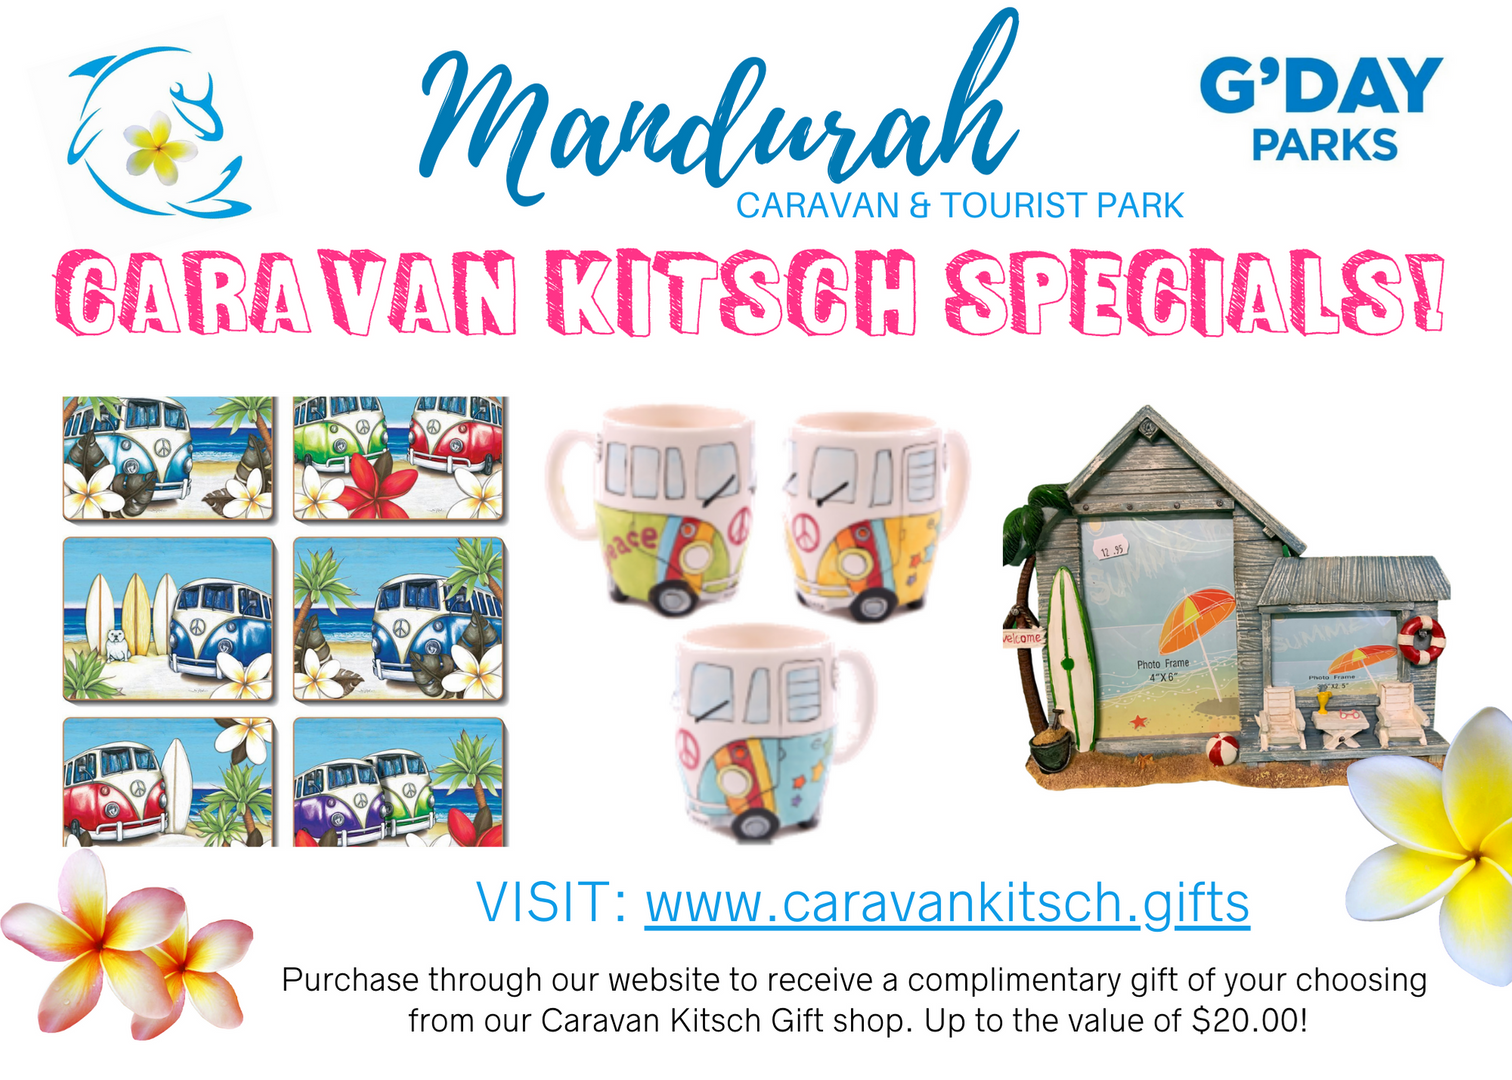 Caravan Kitsch Gift Shop